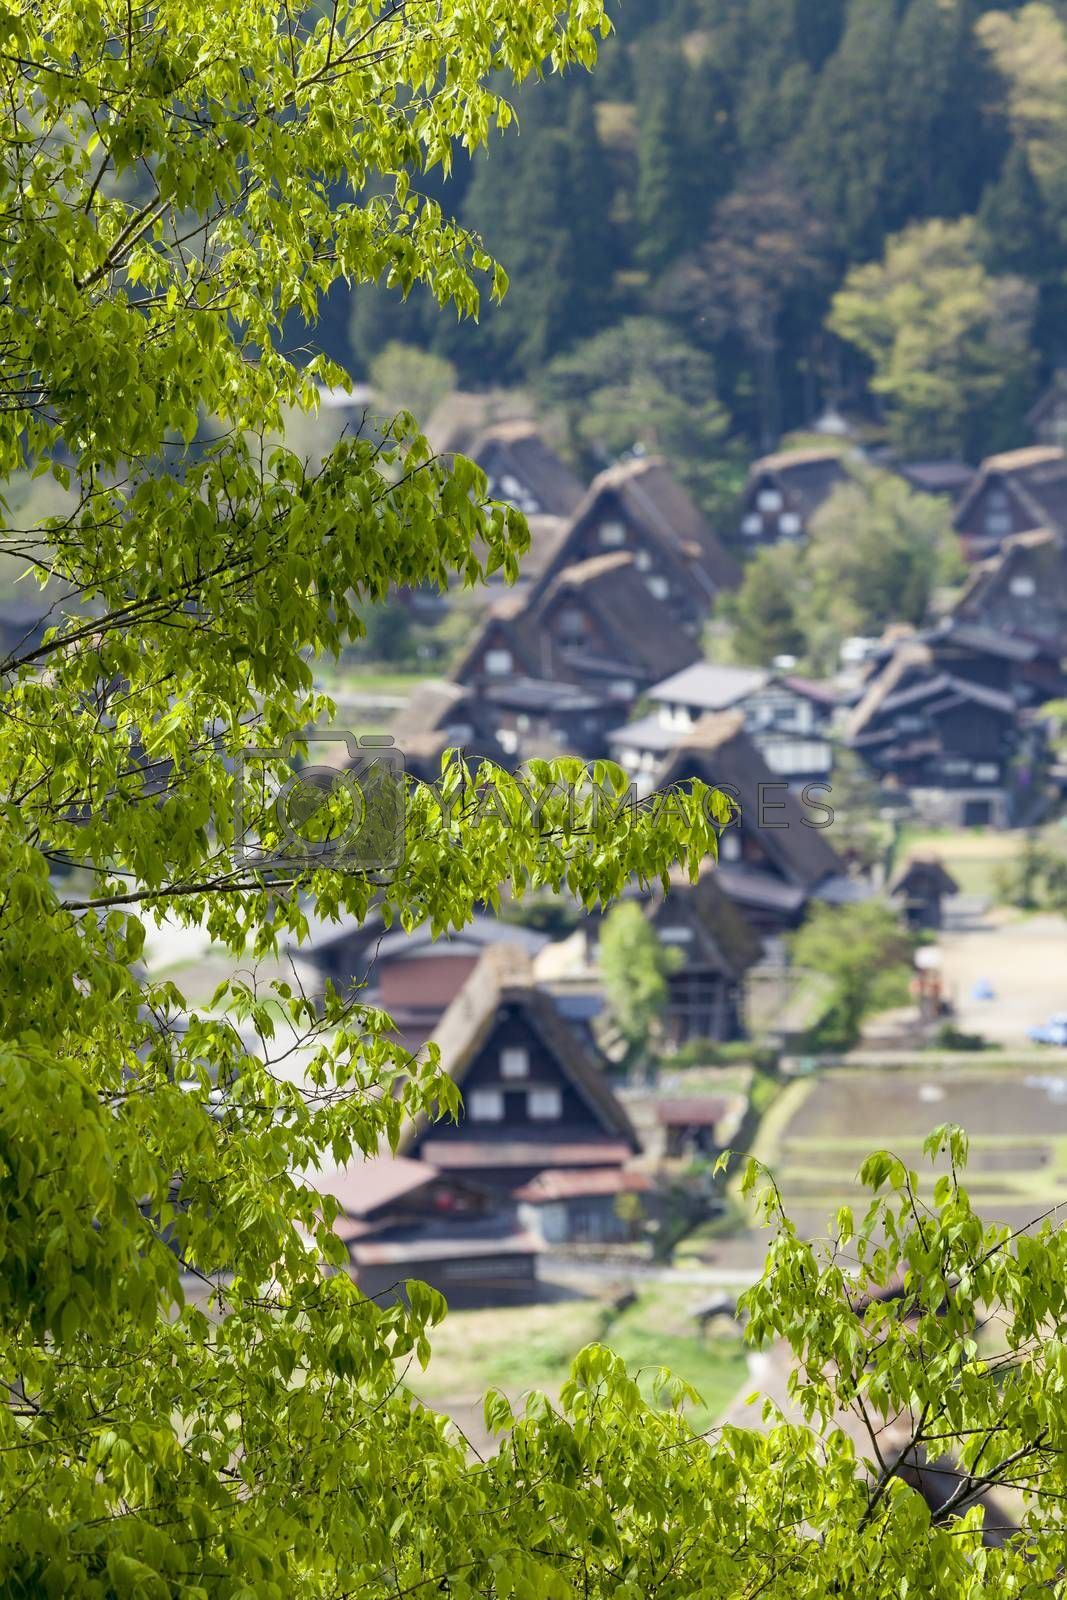 Traditional and Historical Japanese village Ogimachi - Shirakawa-go, Japan